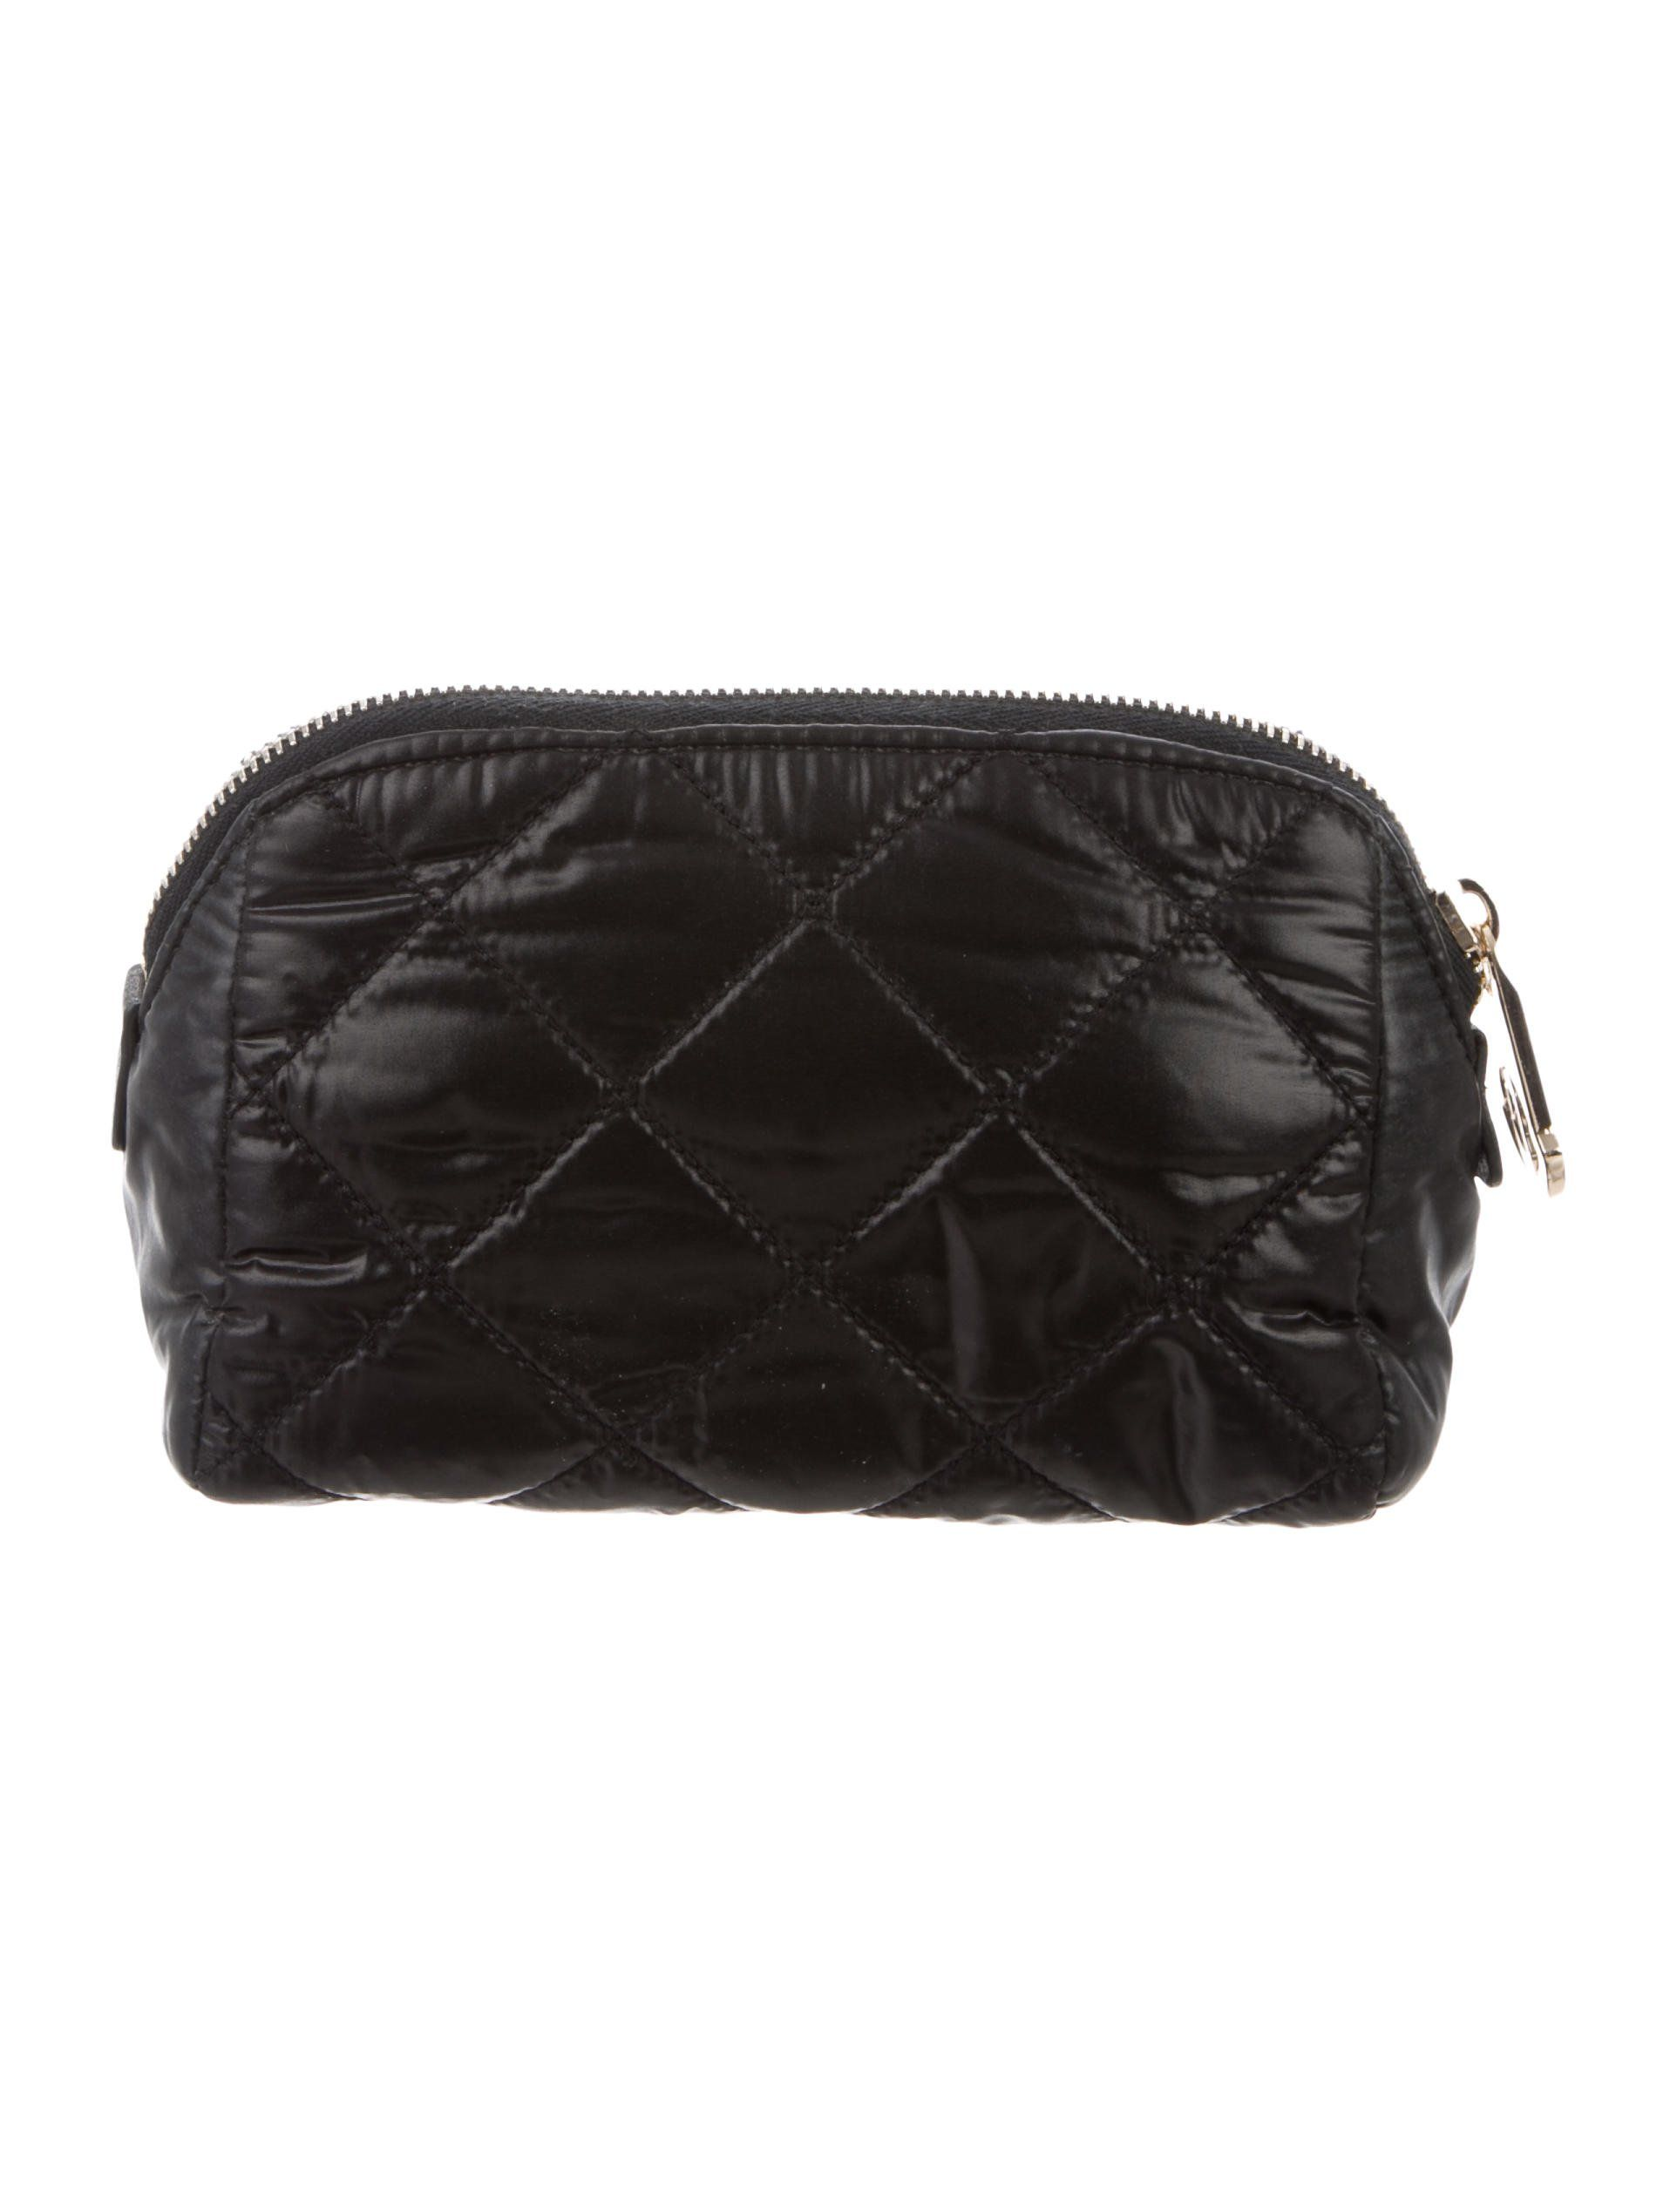 Black quilted nylon Moncler cosmetic bag with logo at front exterior 1d47d40fa8656